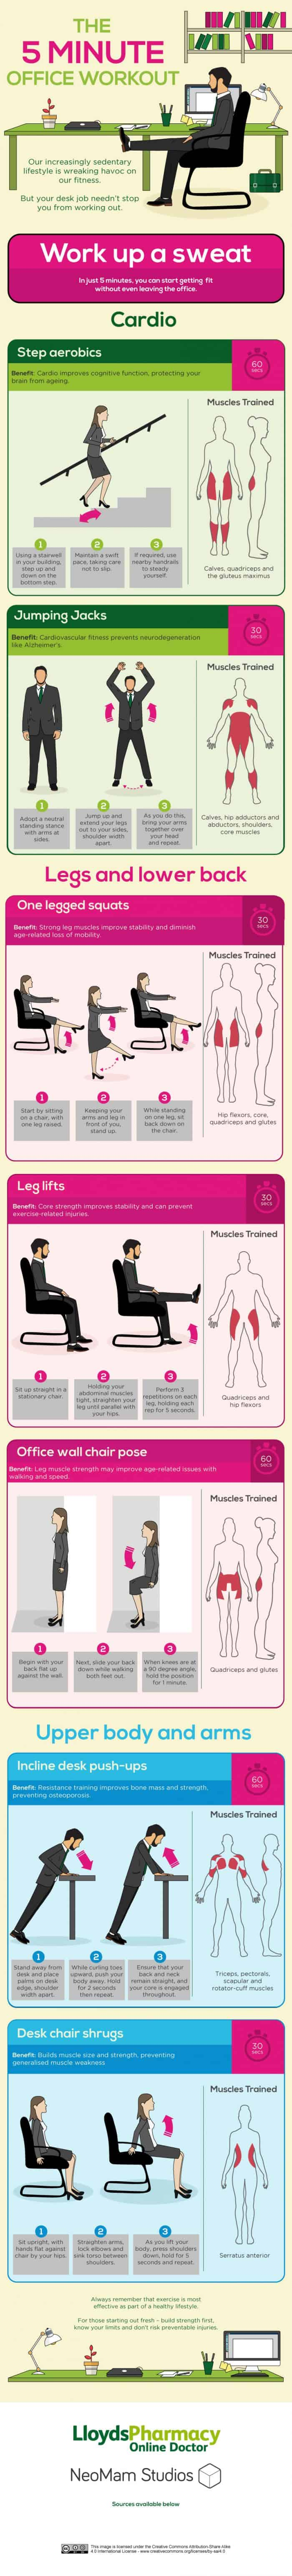 5 Minute Workout Infographic